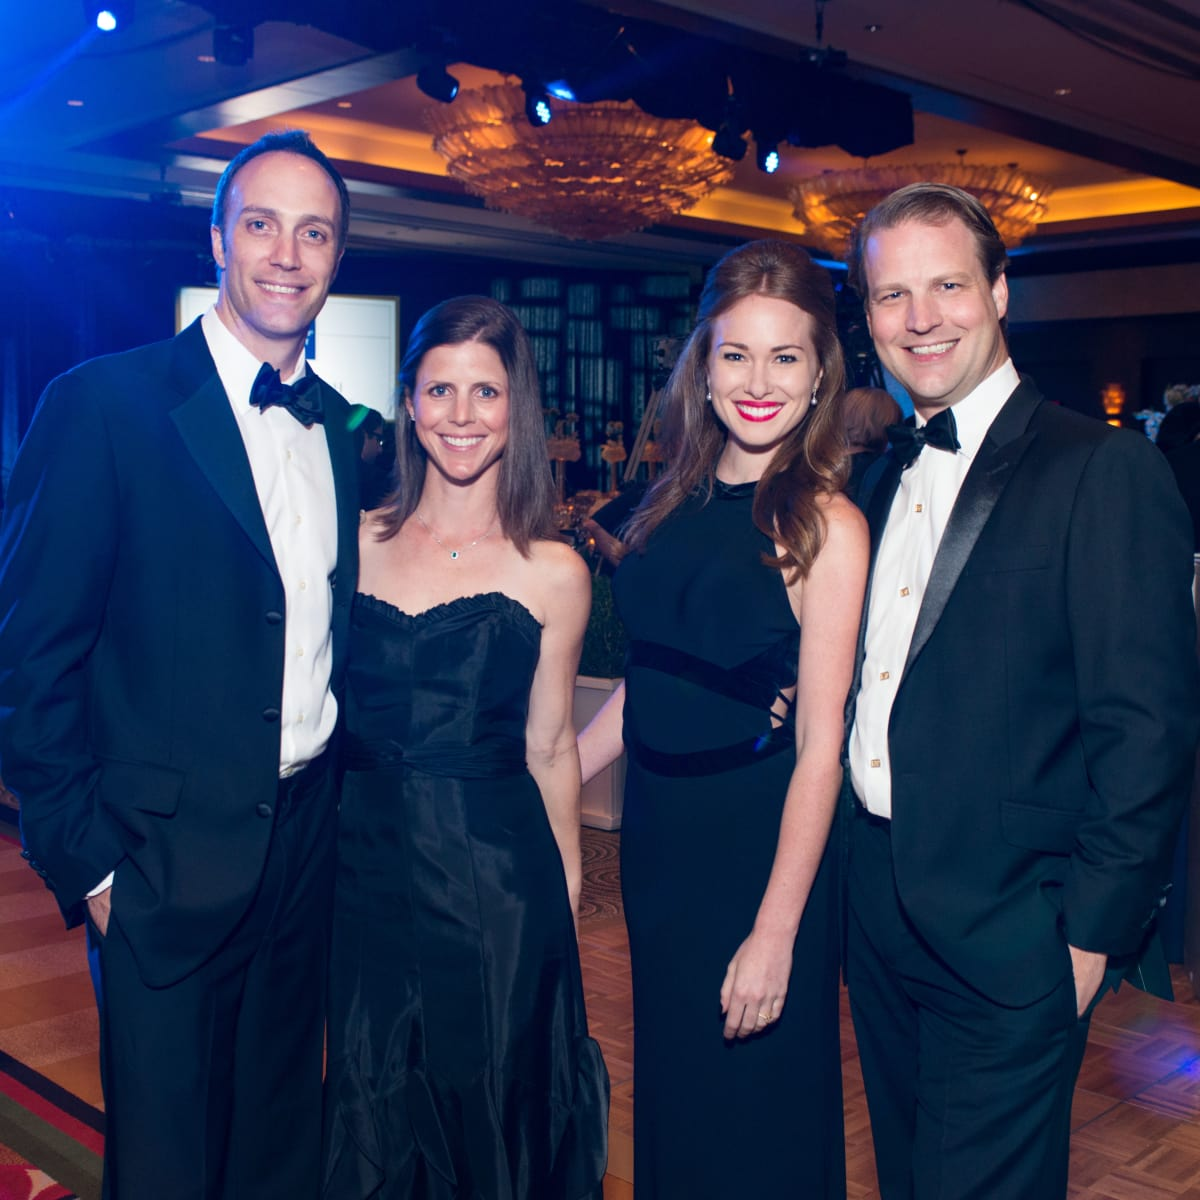 News, Shelby, UNICEF gala, Nov. 2015,  Morgan & Ede Booth, Kelly Frye, Ed Tinsley